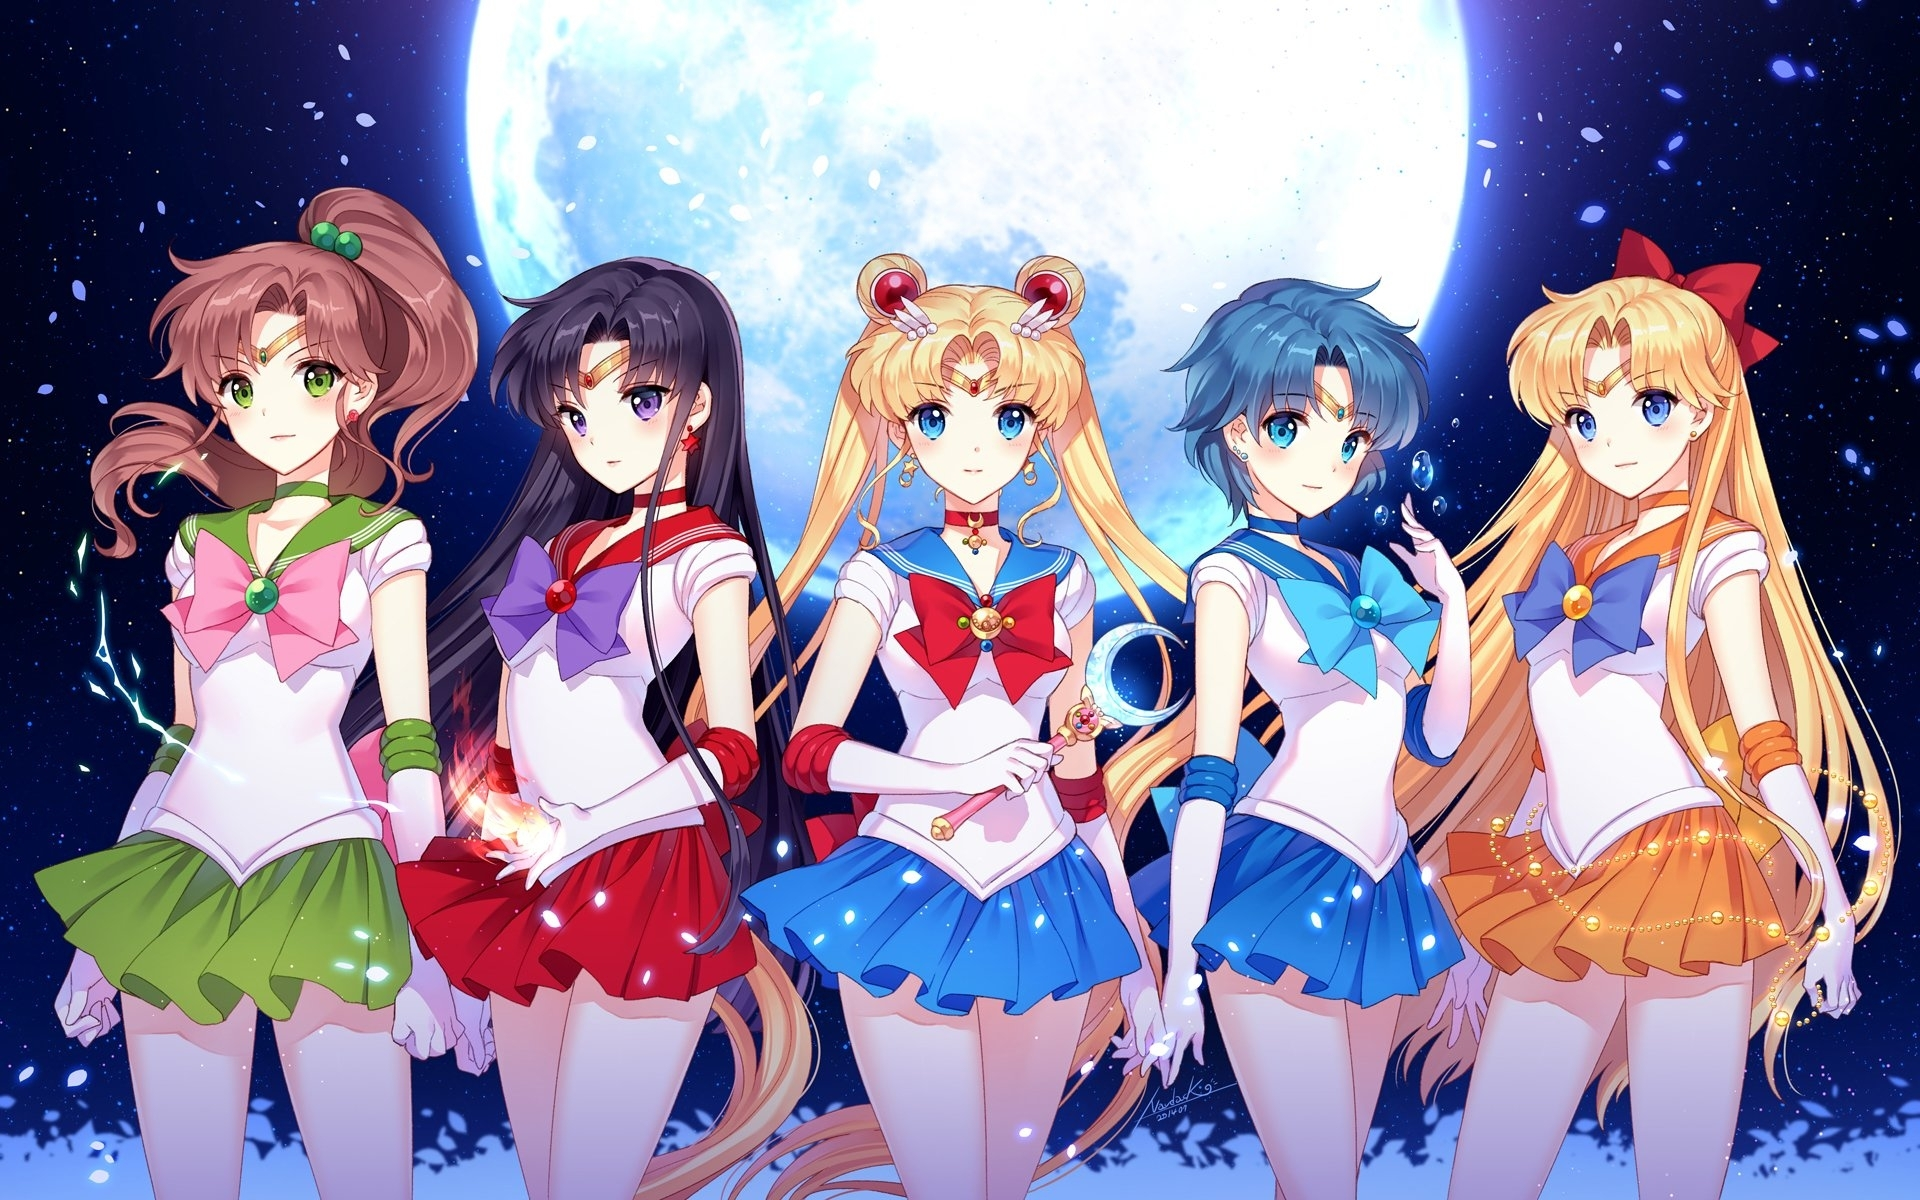 sailor moon full hd wallpaper and background image | 1920x1200 | id